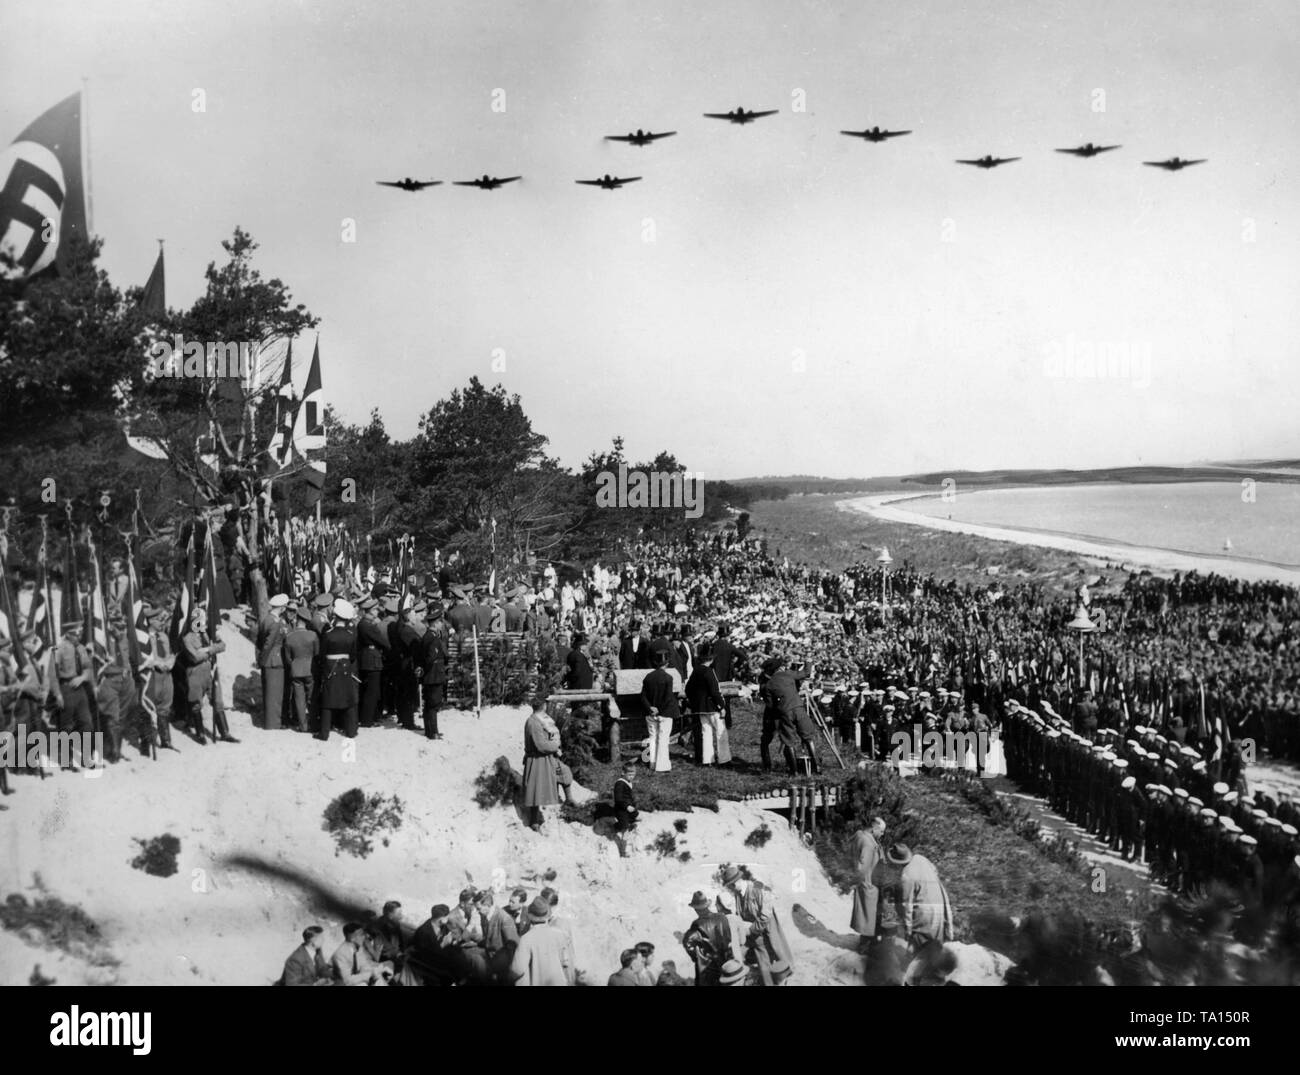 Groundbraking ceremony of the Baltic Sea beach resort of the Nazi organization 'Kraft durch Freude' ('Strength through Joy') between Binz and Sassnitz on Ruegen (today Prora) during an aerobatic maneuver of a flight of 9 aircrafts of the Luftwaffe (airforce). On the right, marines. - Stock Image